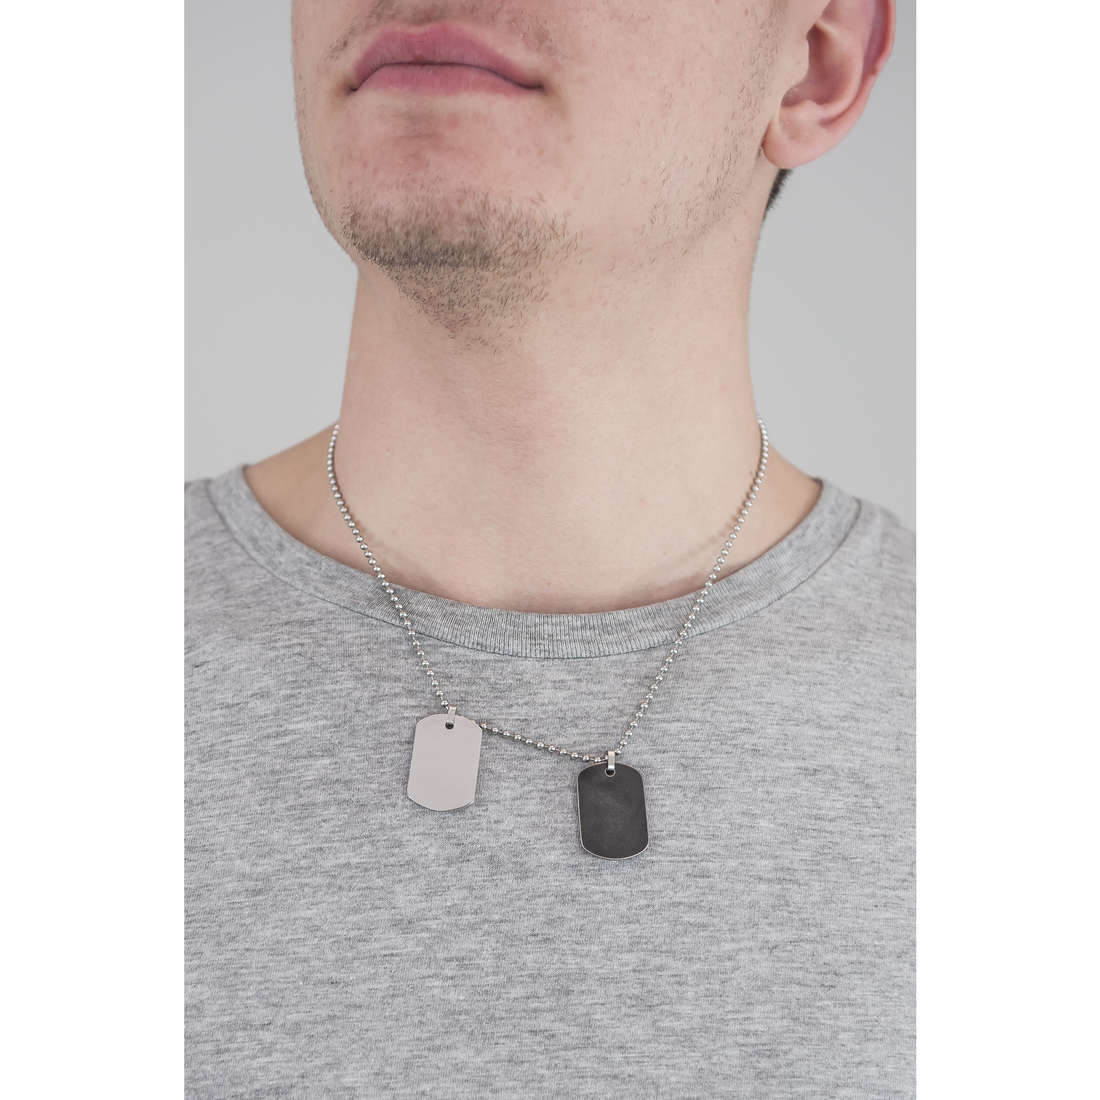 Morellato necklaces Cross man SAHU01 indosso